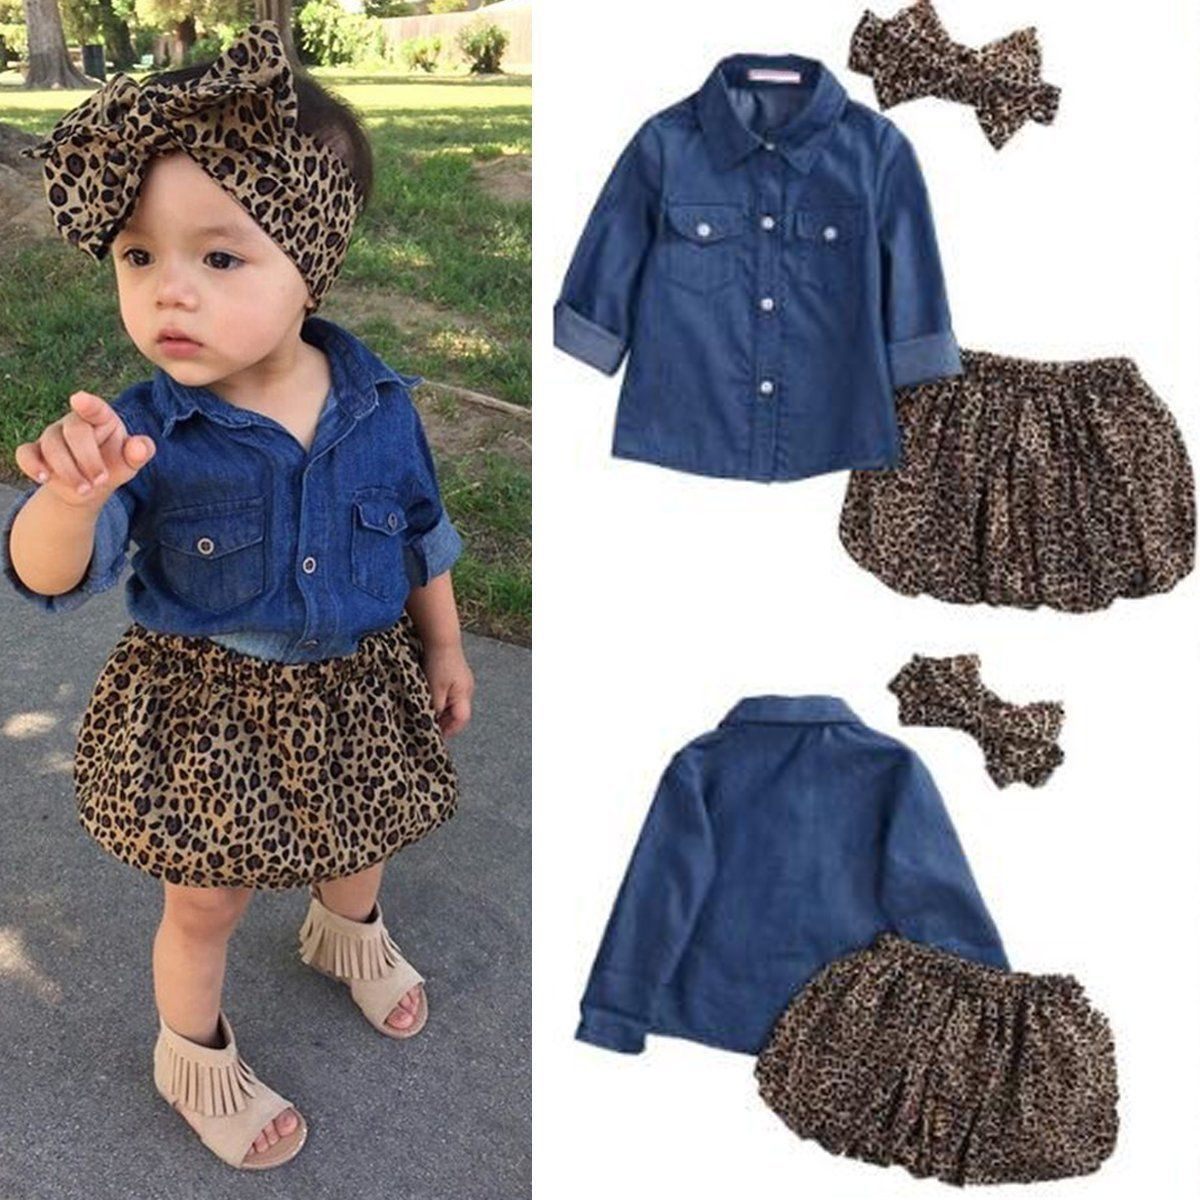 4a5d7b2472  4.99 - Toddler Kids Baby Girls Denim T-Shirt Tops+Tutu Skirt Outfits  Clothes 3Pcs Set  ebay  Fashion